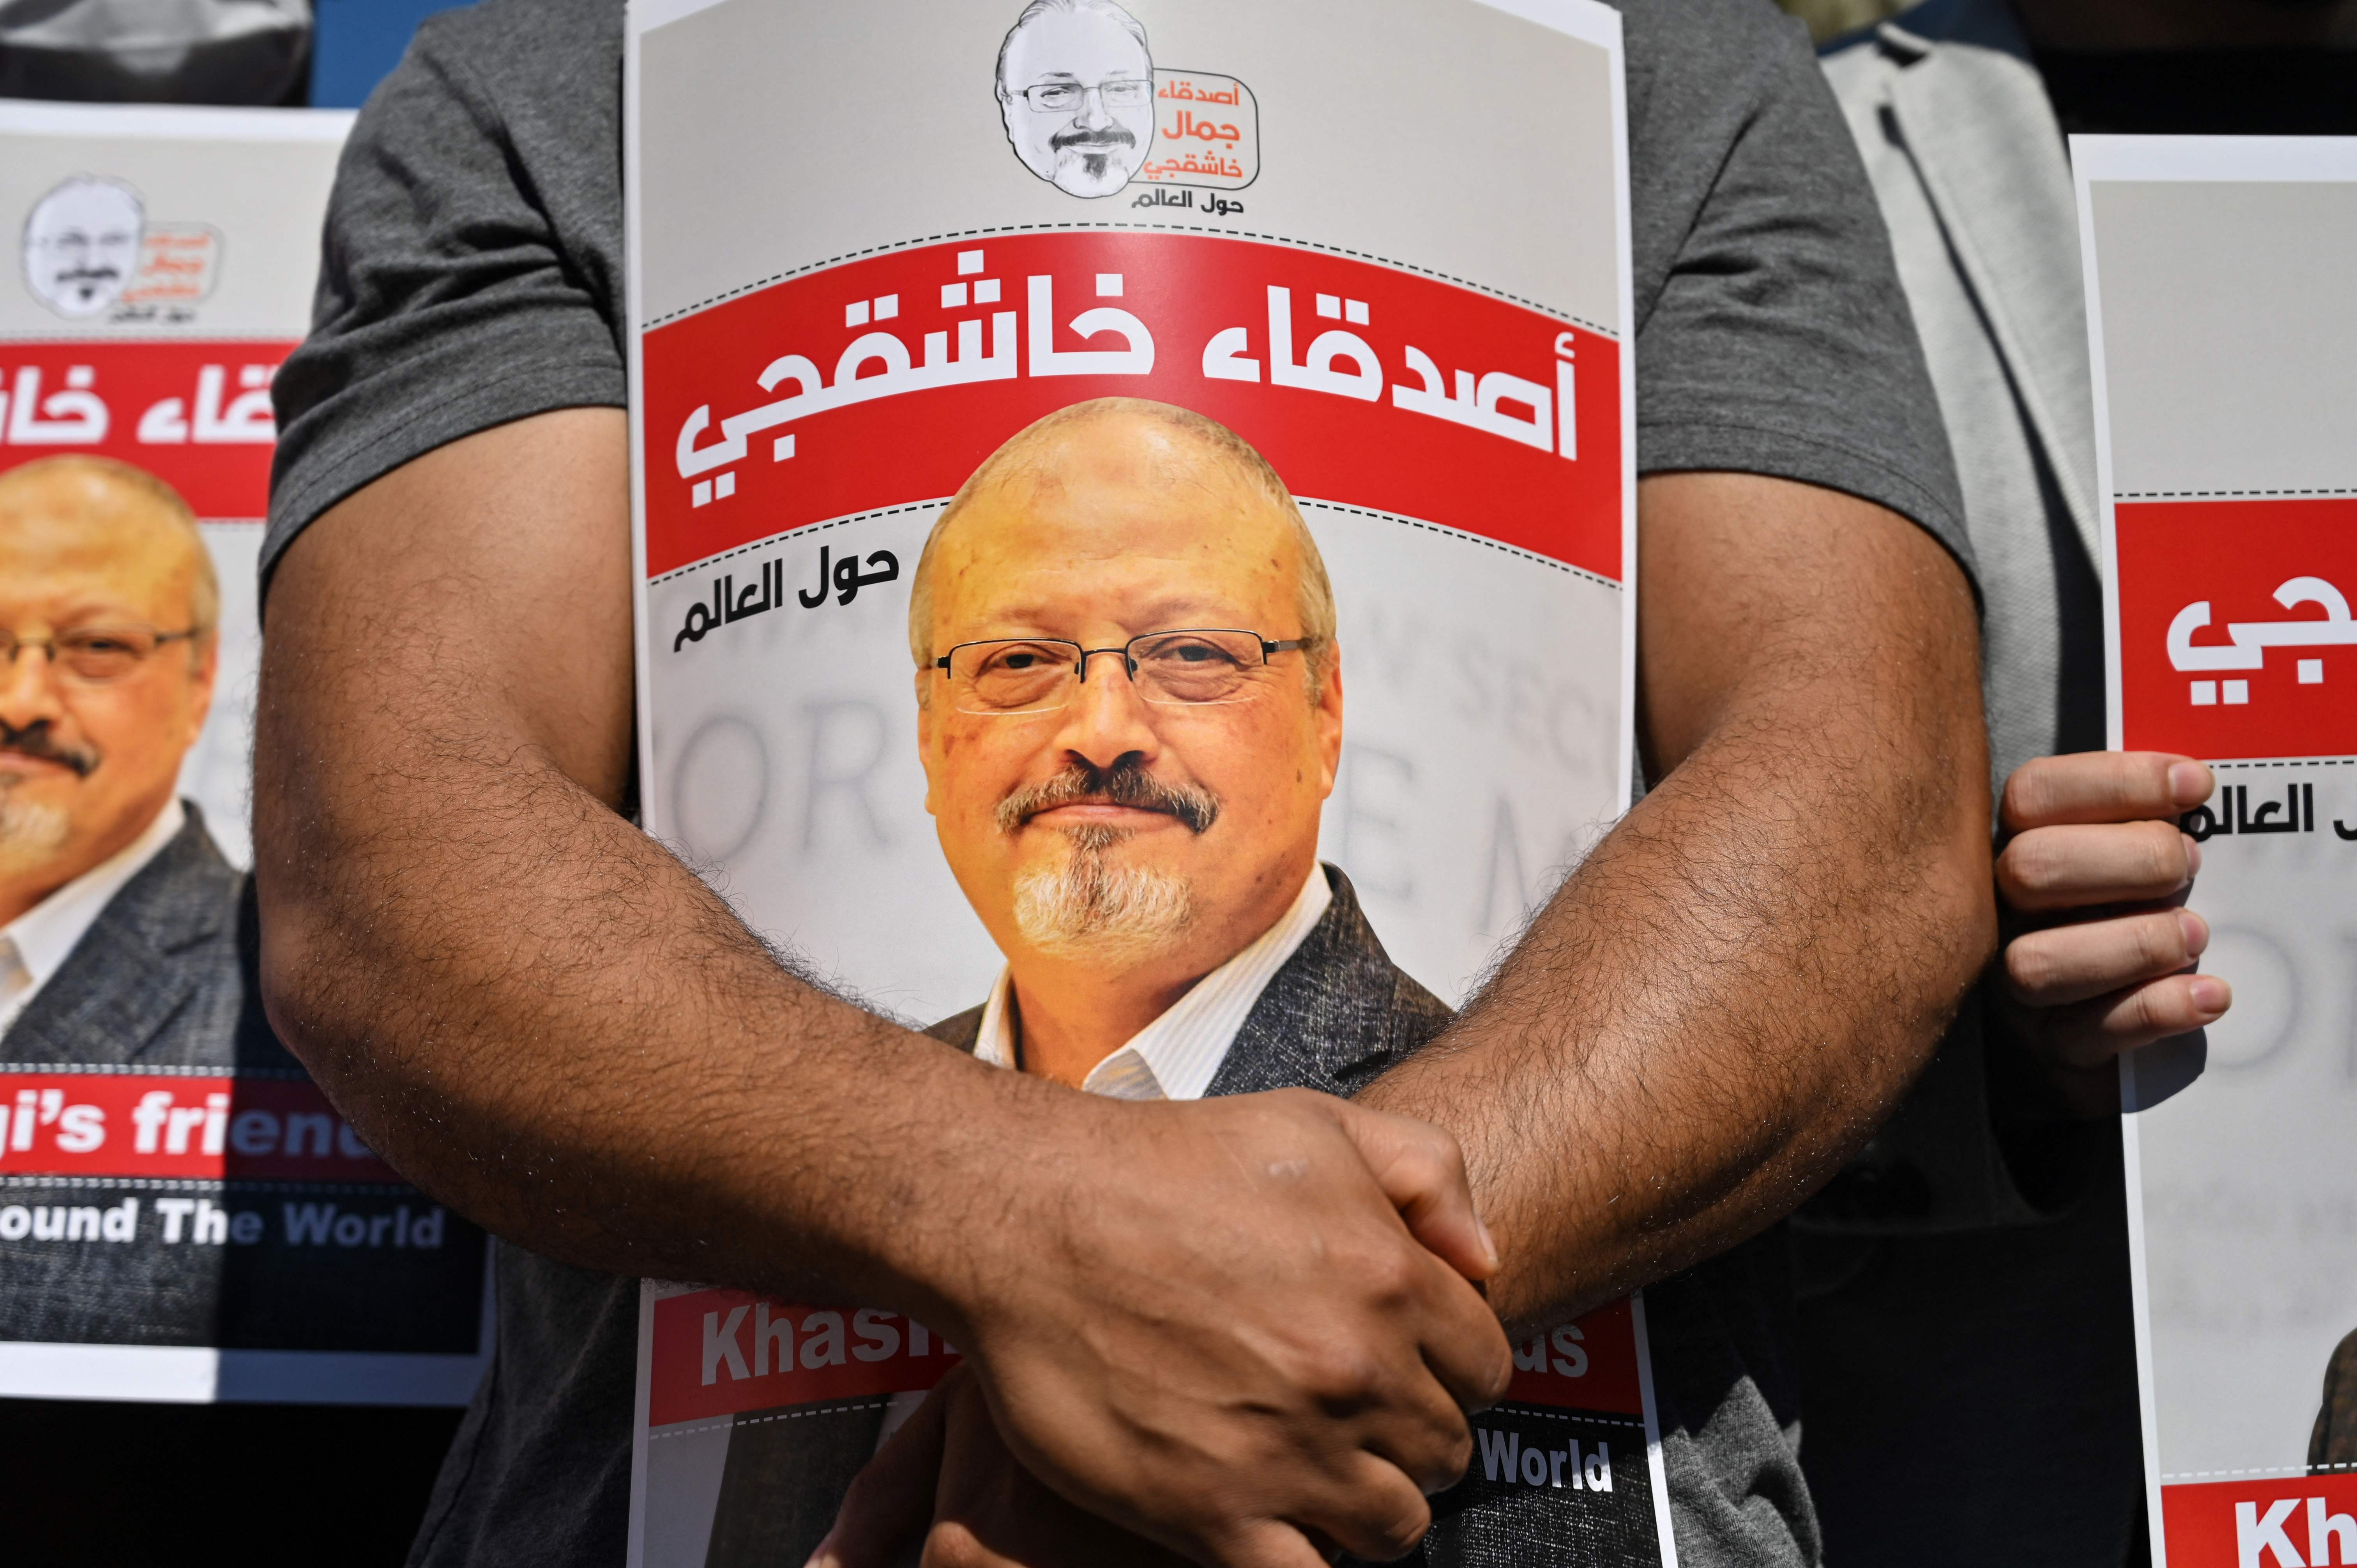 In this file photo taken on October 02, 2020, friends of murdered Saudi journalist Jamal Khashoggi hold posters bearing his picture as they attend an event marking the second-year anniversary of his assassination in front of Saudi Arabia Istanbul Consulate.